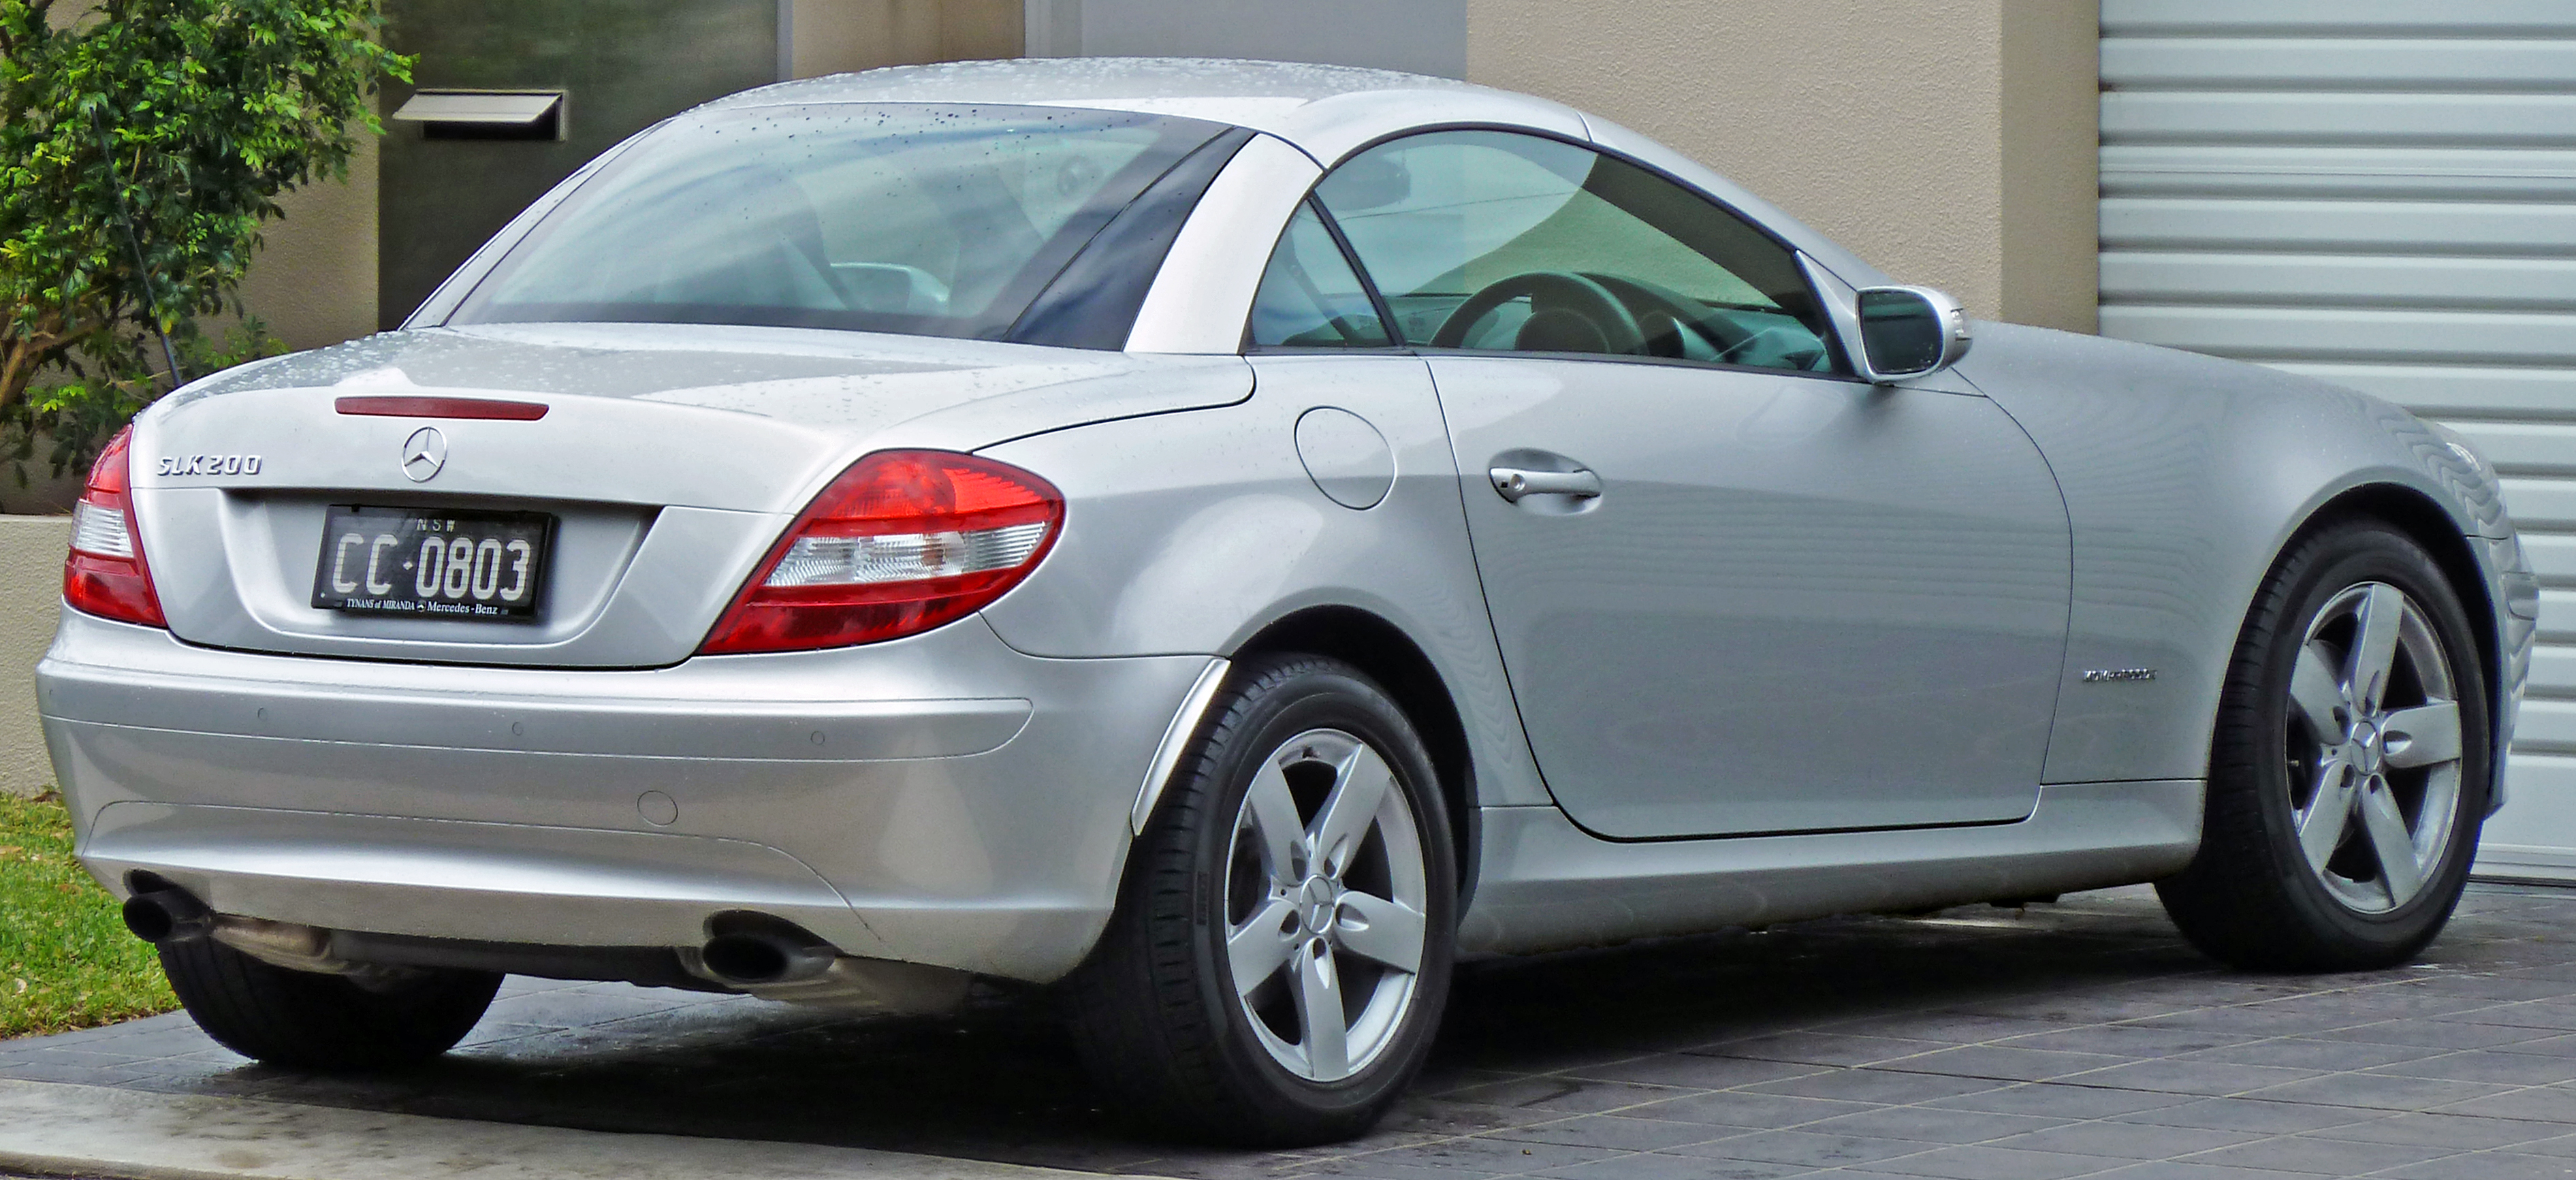 Mercedes-Benz SLK 200 Kompressor photo 01